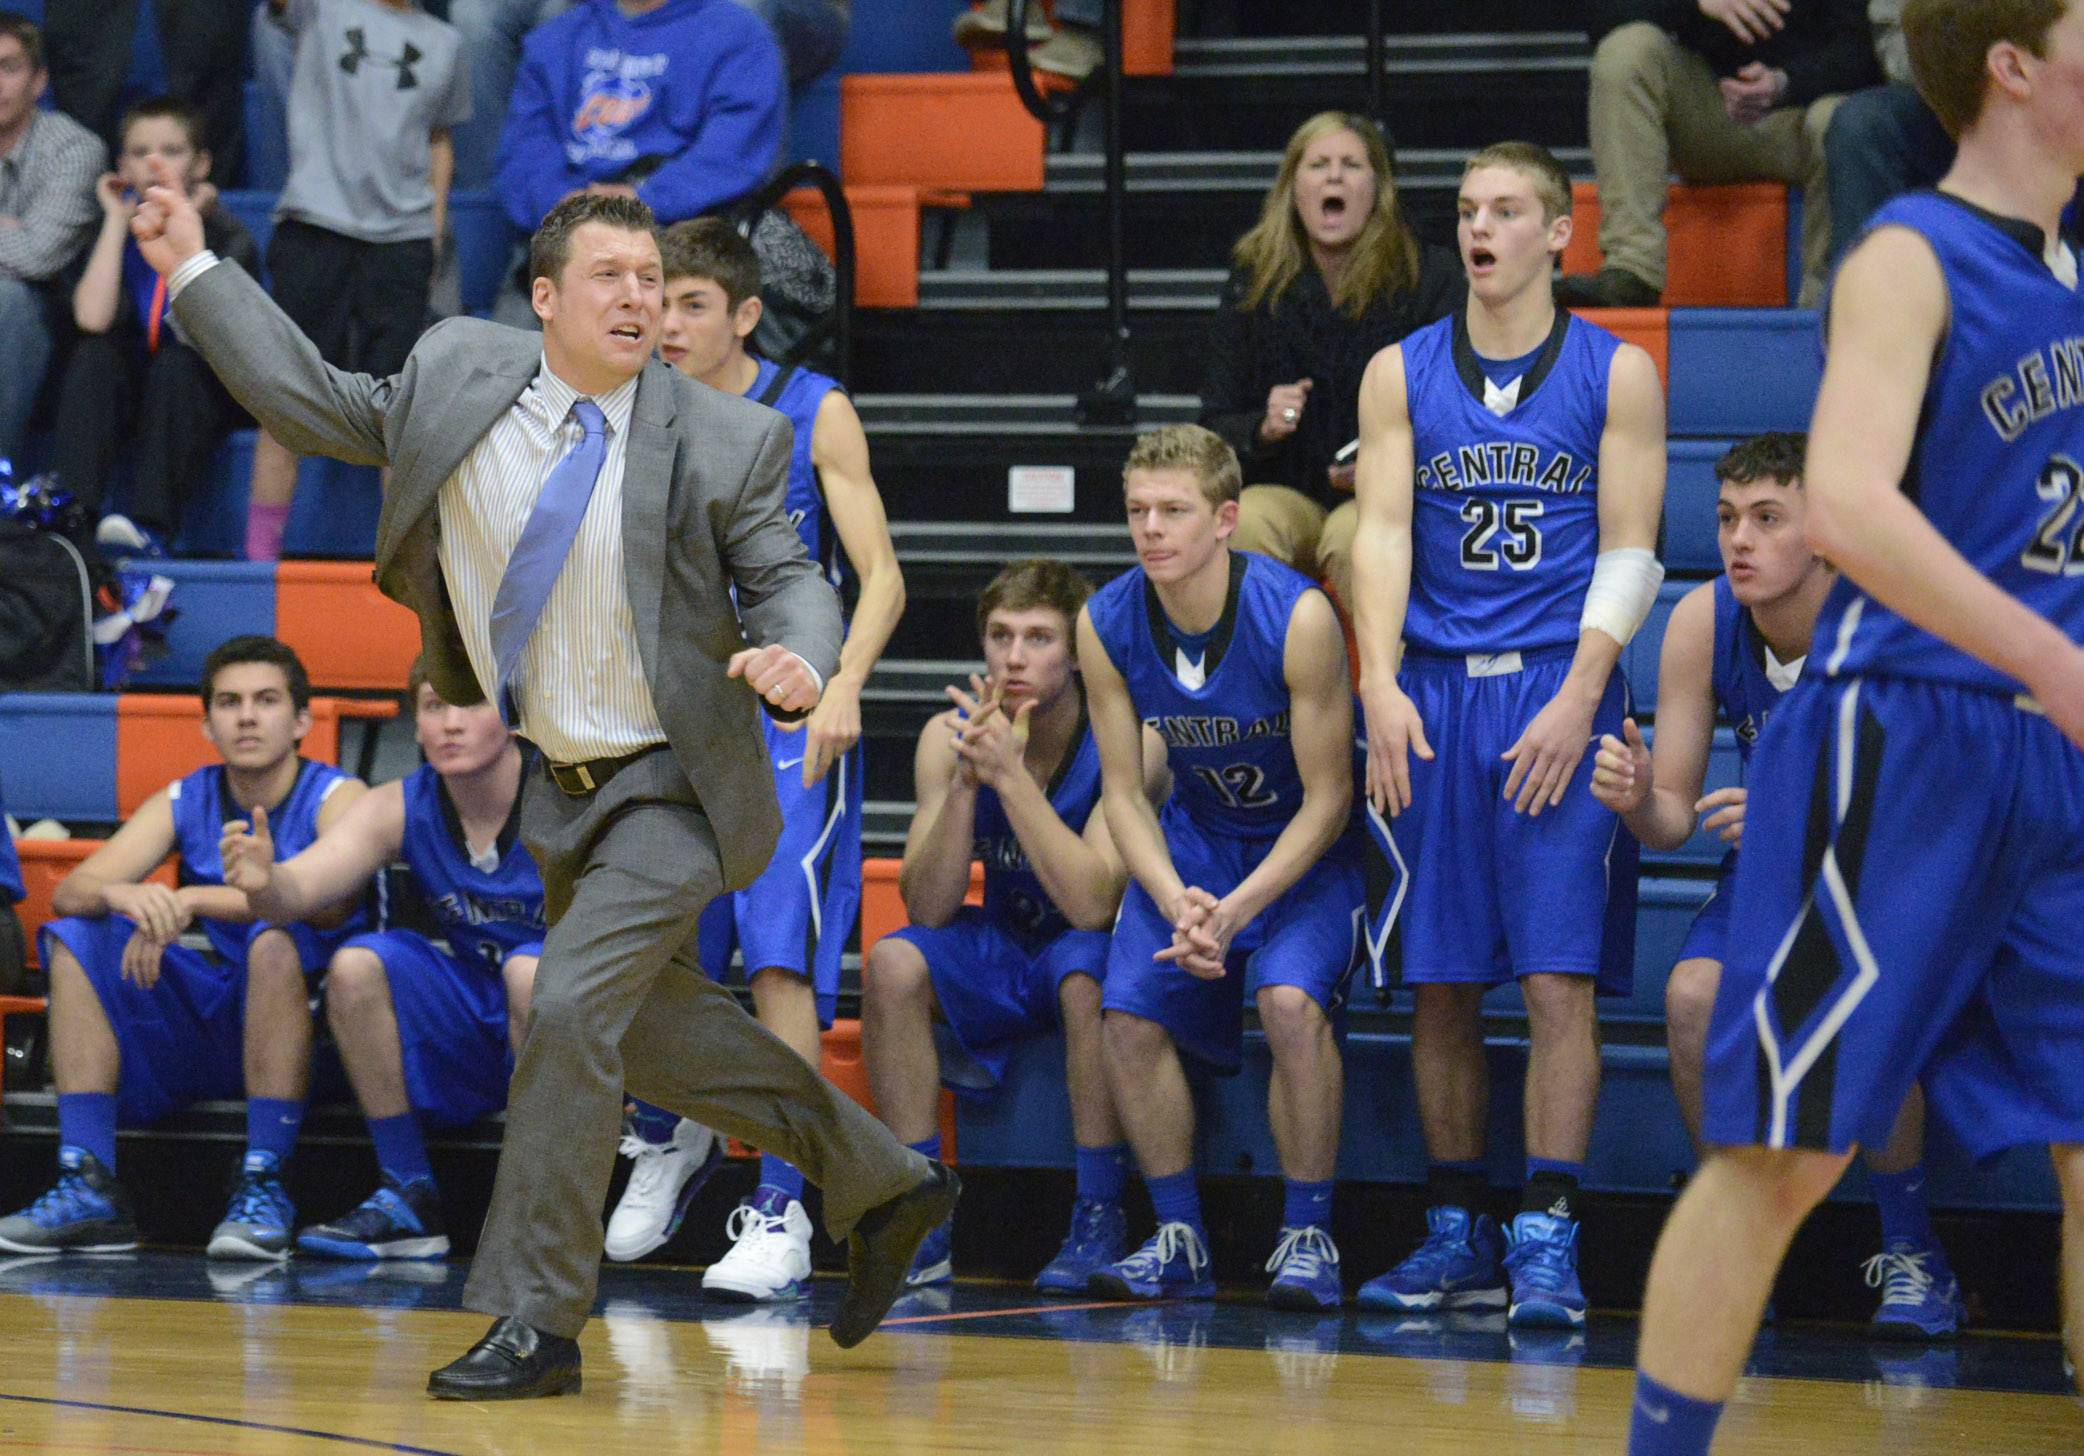 Burlington Central coach Brett Porto reacts with dismay as Wheaton Academy wins over the Rockets in the Class 3A regional at Genoa-Kingston High School in Genoa on Wednesday.